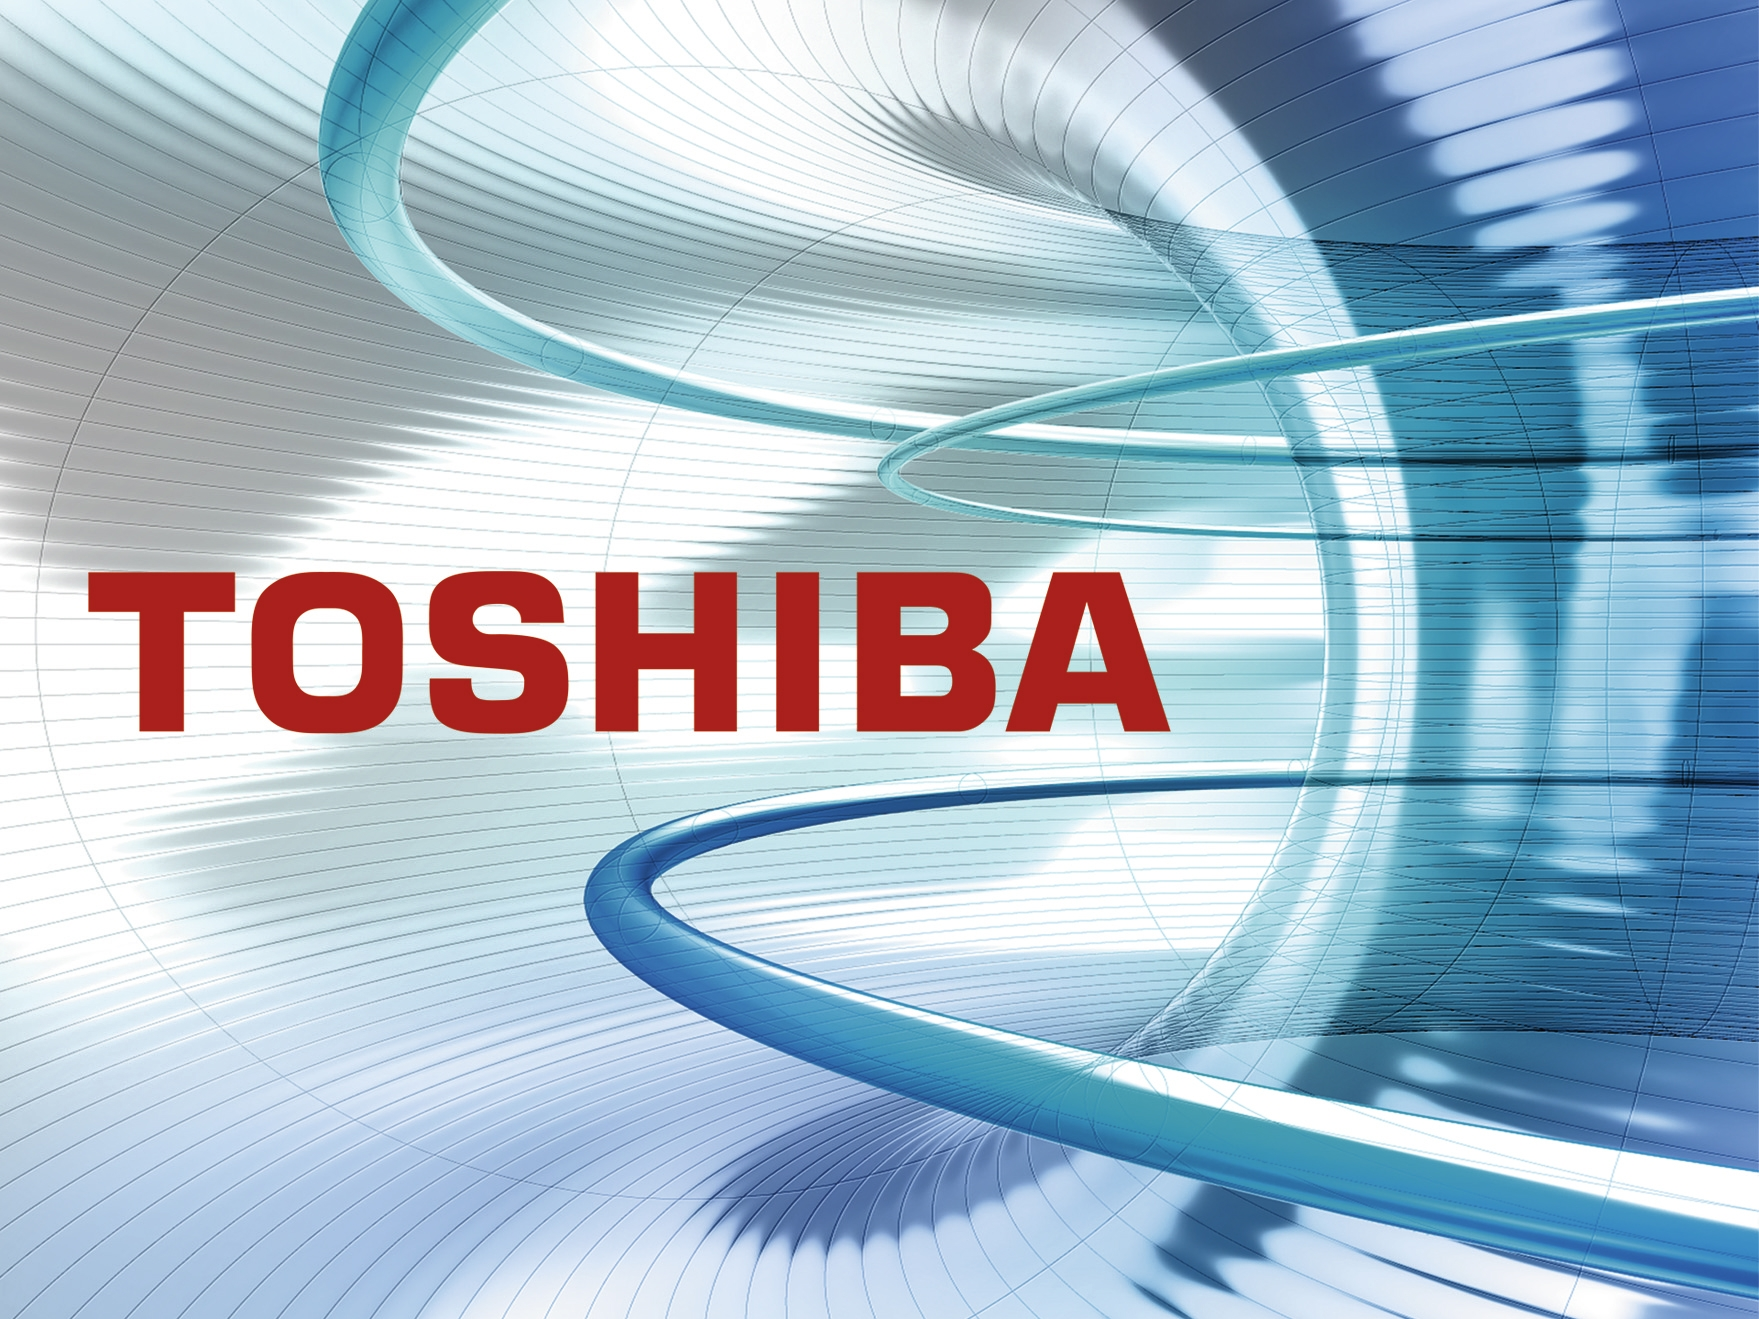 Toshiba Wallpaper And Background 1759x1319 Id 390586